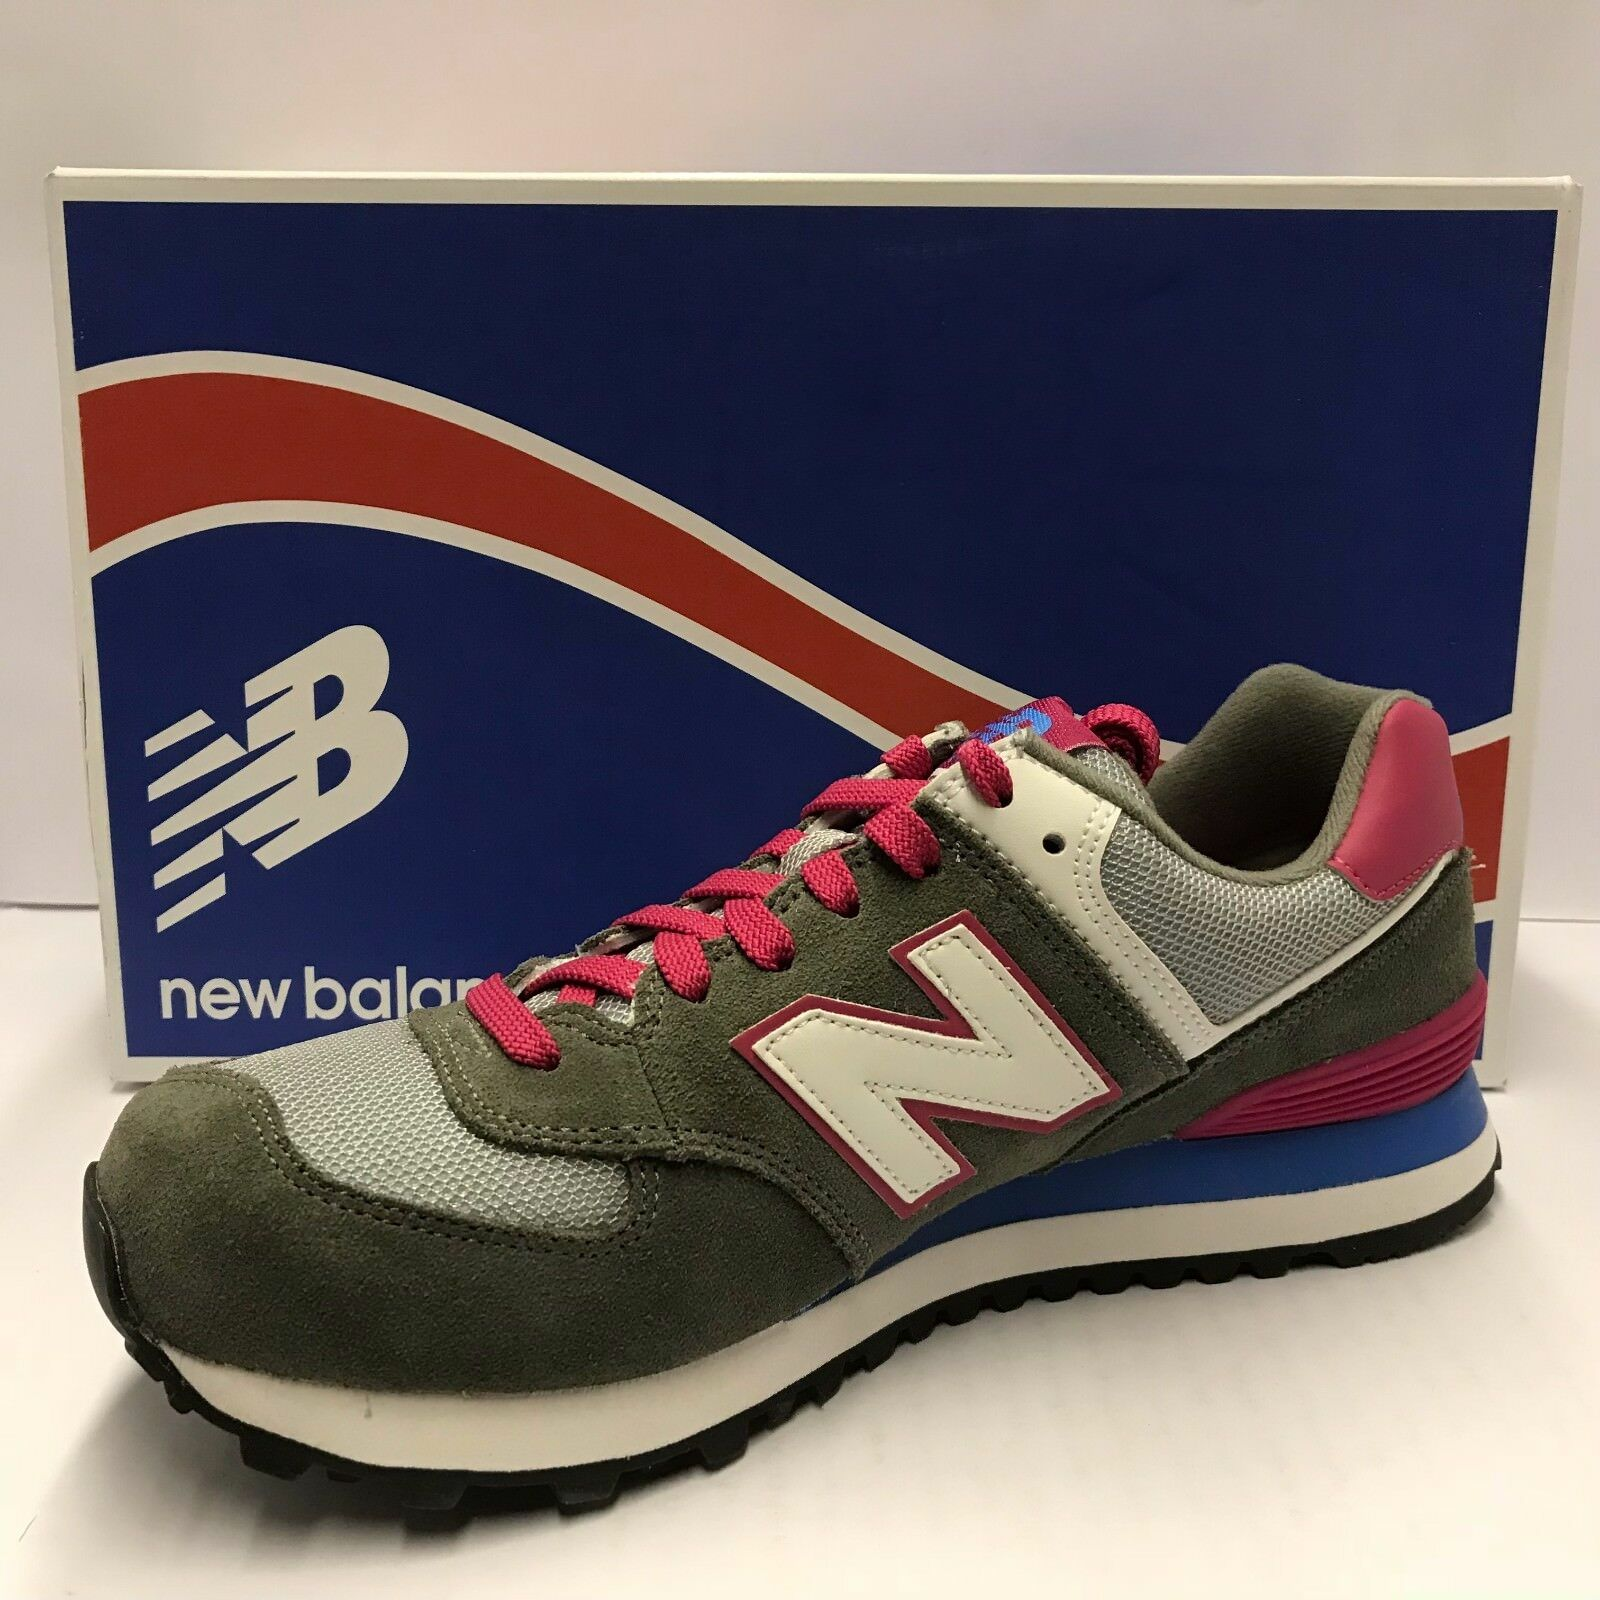 New Balance Womens Trainer shoes WL574 CPW Classics Suede Size 4 Eur 36.5 Grey